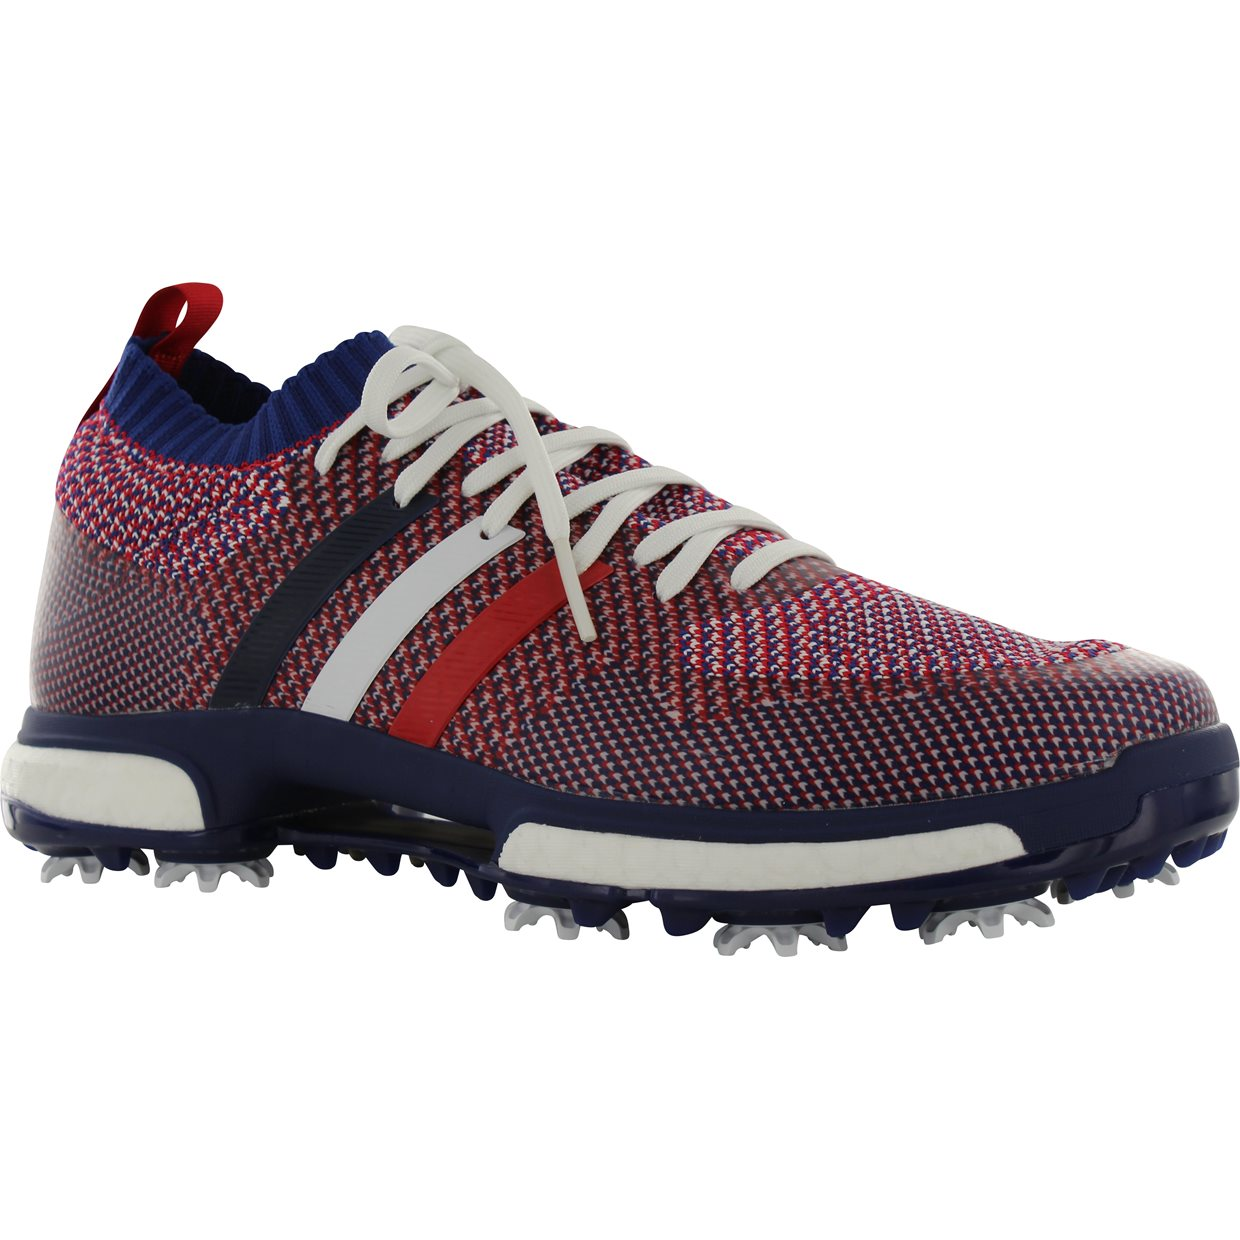 499620db0 Adidas Tour 360 Knit Golf Shoe in White Night Sky Scarlet Mfr. Close-Out